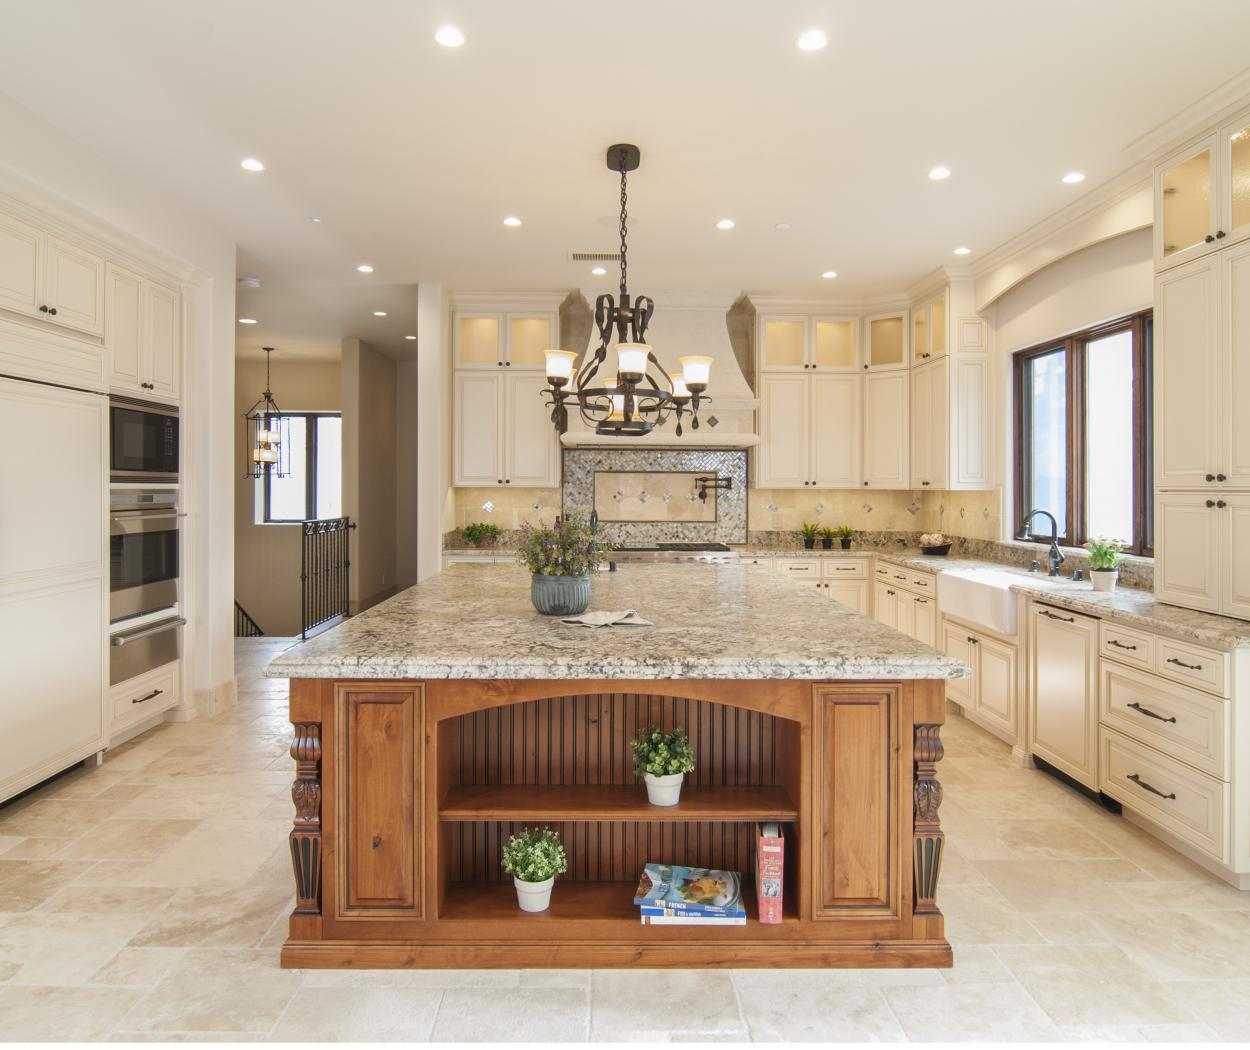 Off White Traditional Kitchen with a Beautiful Stained Island Built in Knotty Alder with Granite Counter Tops, Stainless Steel Appliances and Oil Rubbed Bronze Hardware